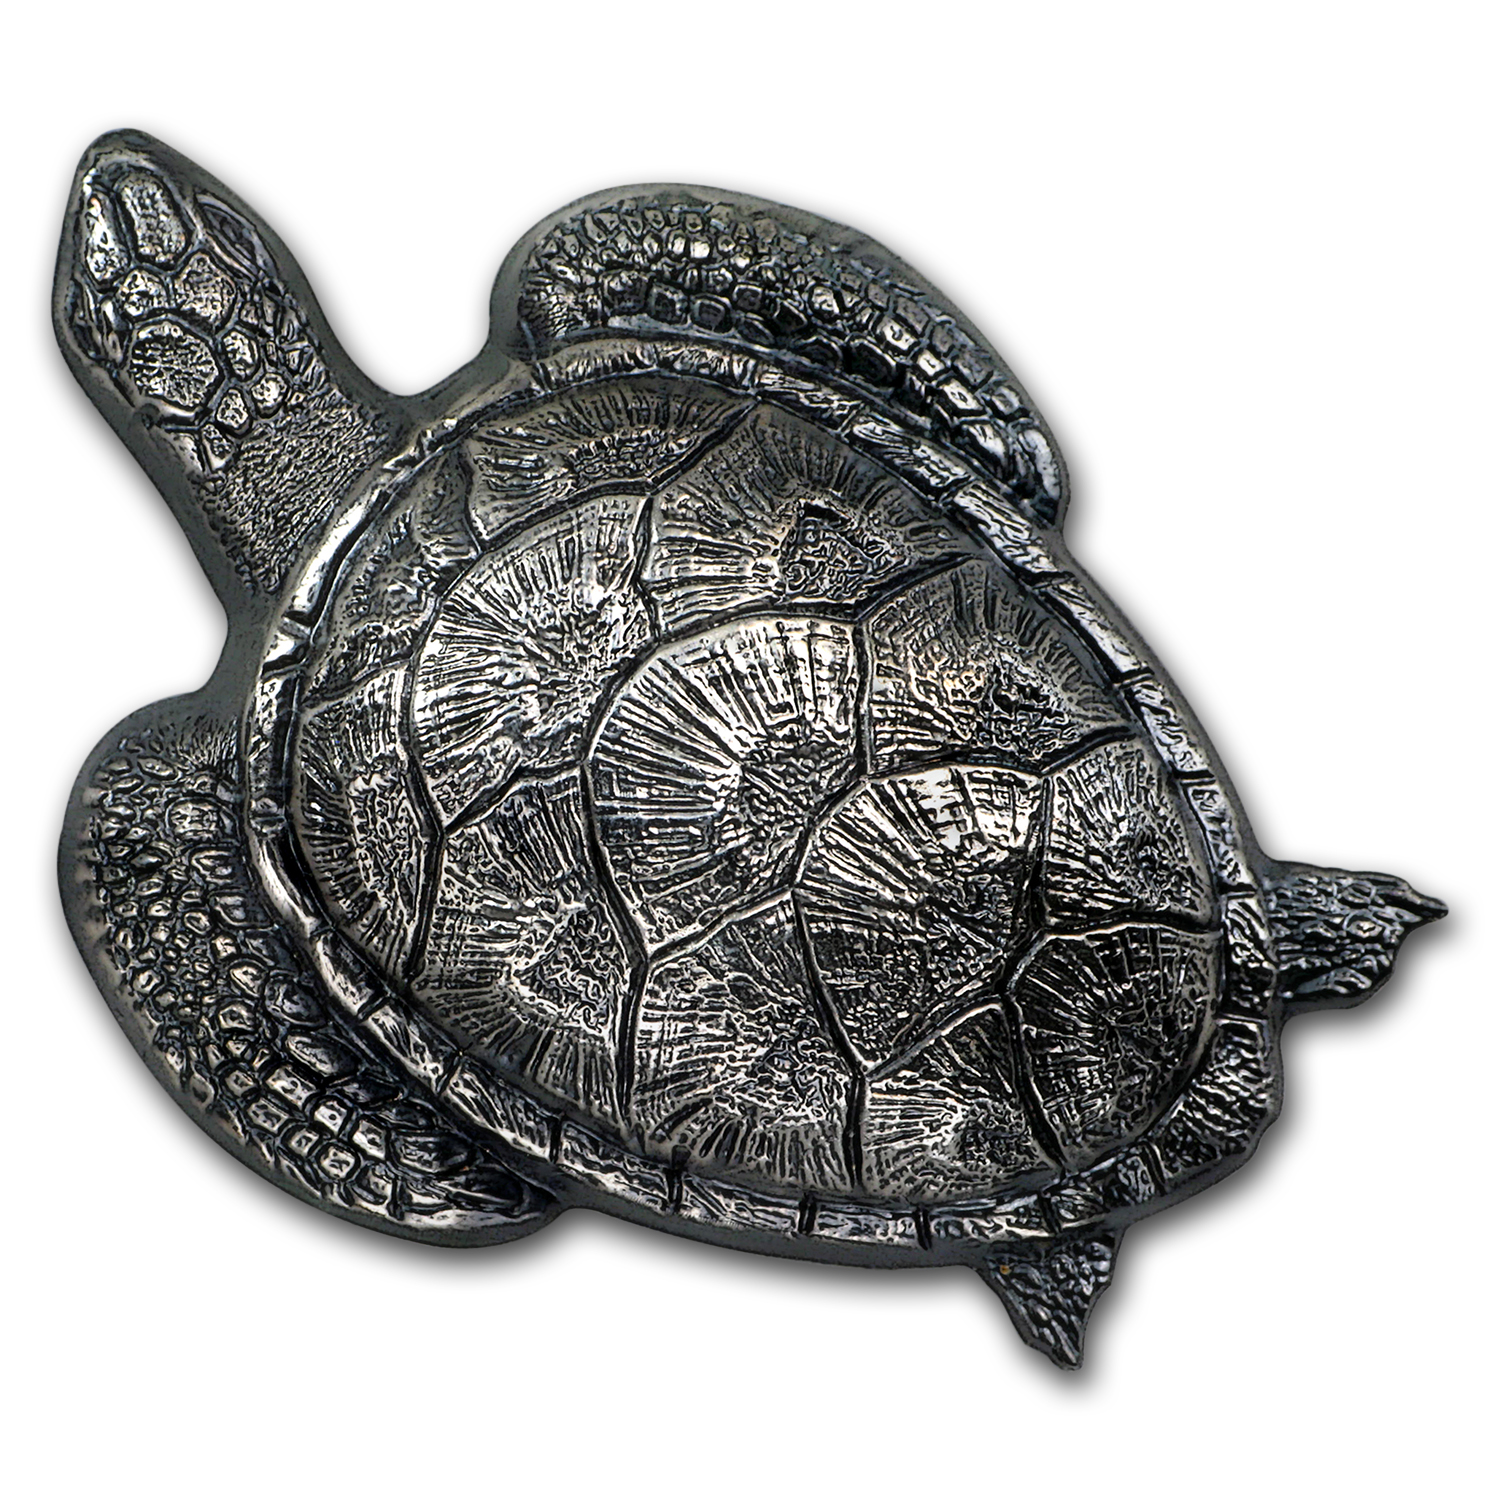 2017 Palau 45 gram Silver Antique Finish Sea Turtle